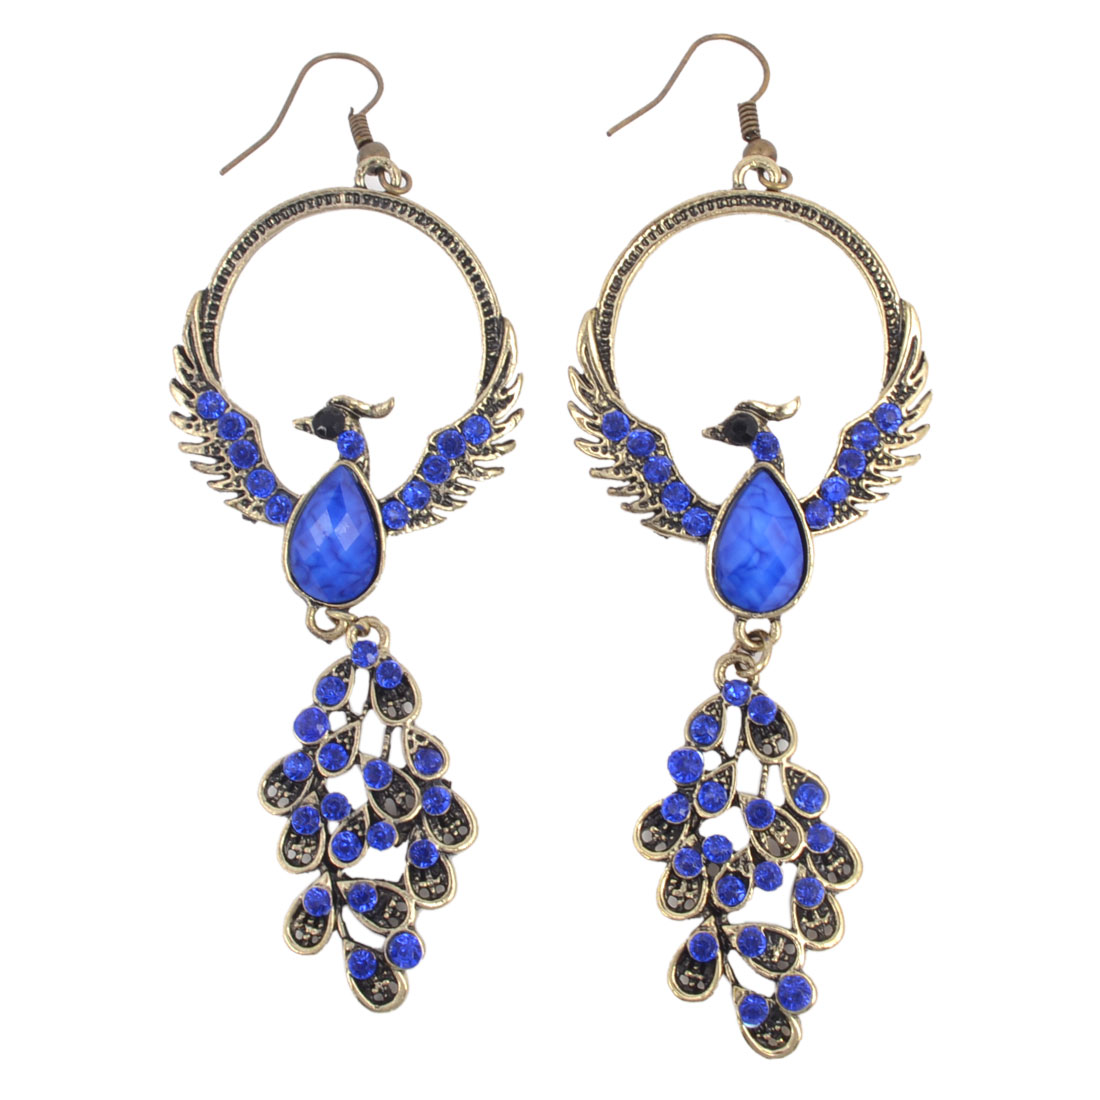 Women Dark Blue Faceted Beads Inlaid Chandelier Hook Earrings Bronze Tone Pair